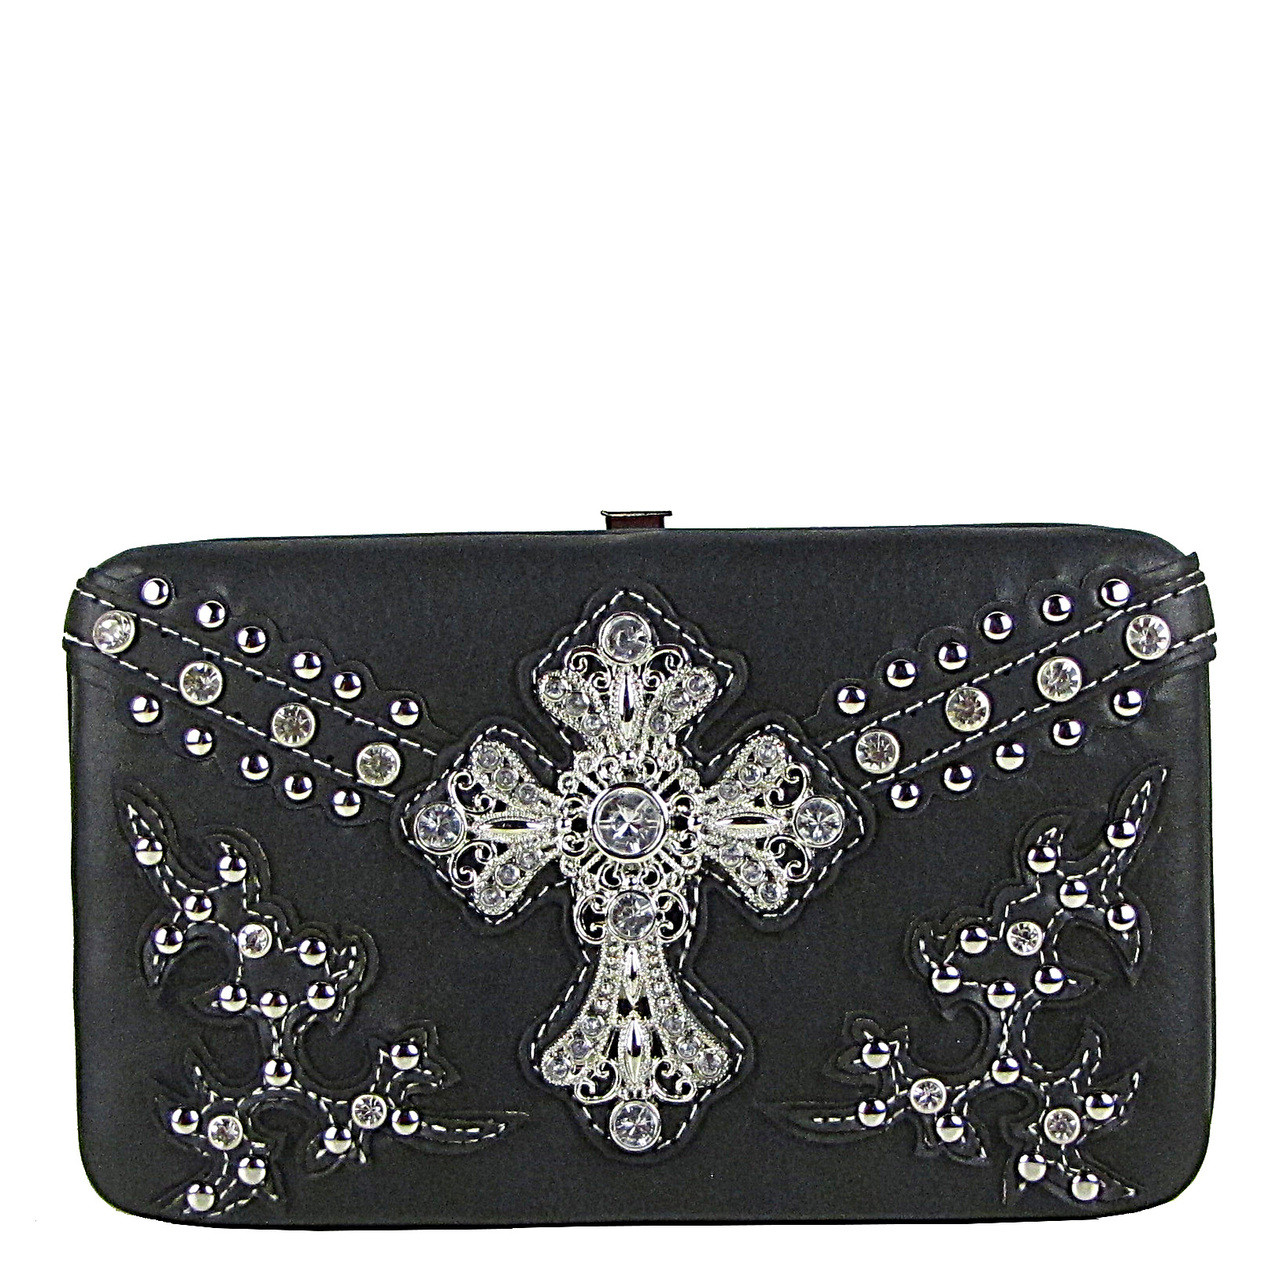 BLACK STUDDED WESTERN RHINESTONE CROSS FLAT THICK WALLET FW2-04109BLK